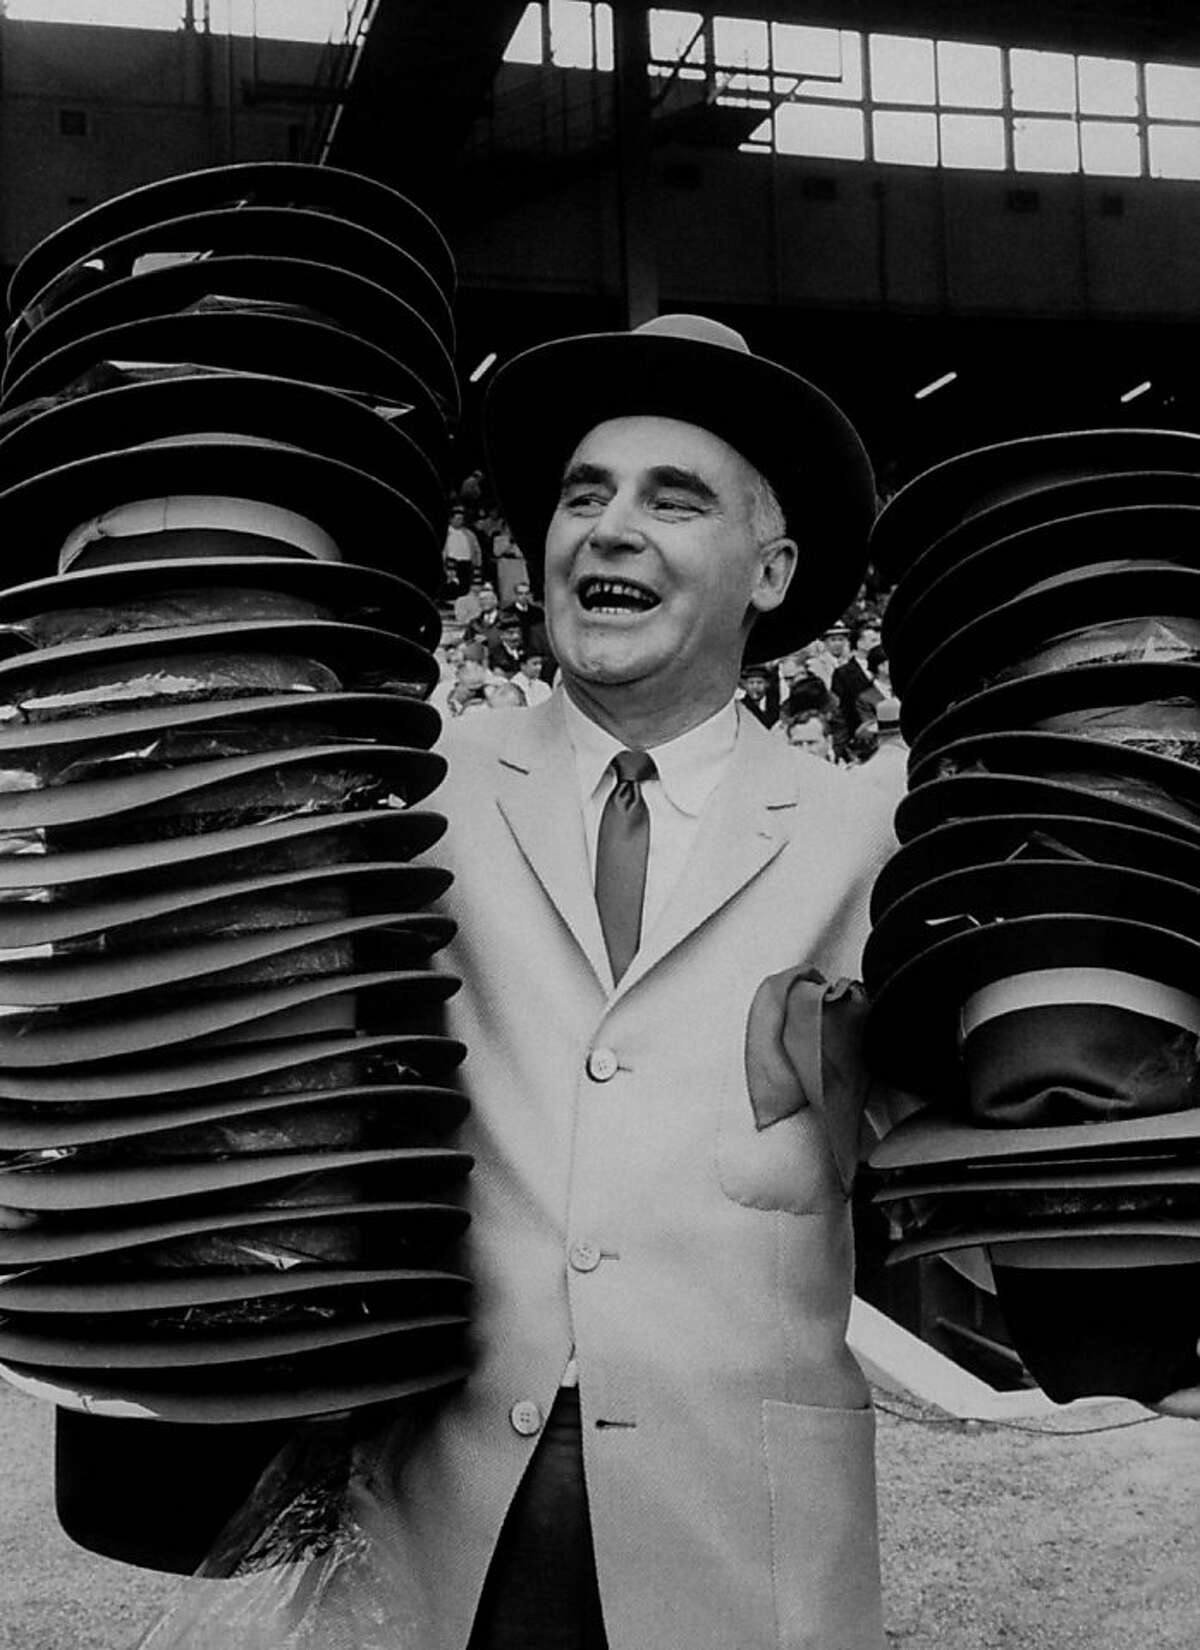 Athletics owner Charlie Finley shows off the green-and-gold 10-gallon hats that were distributed to fans on Opening Day 1963.